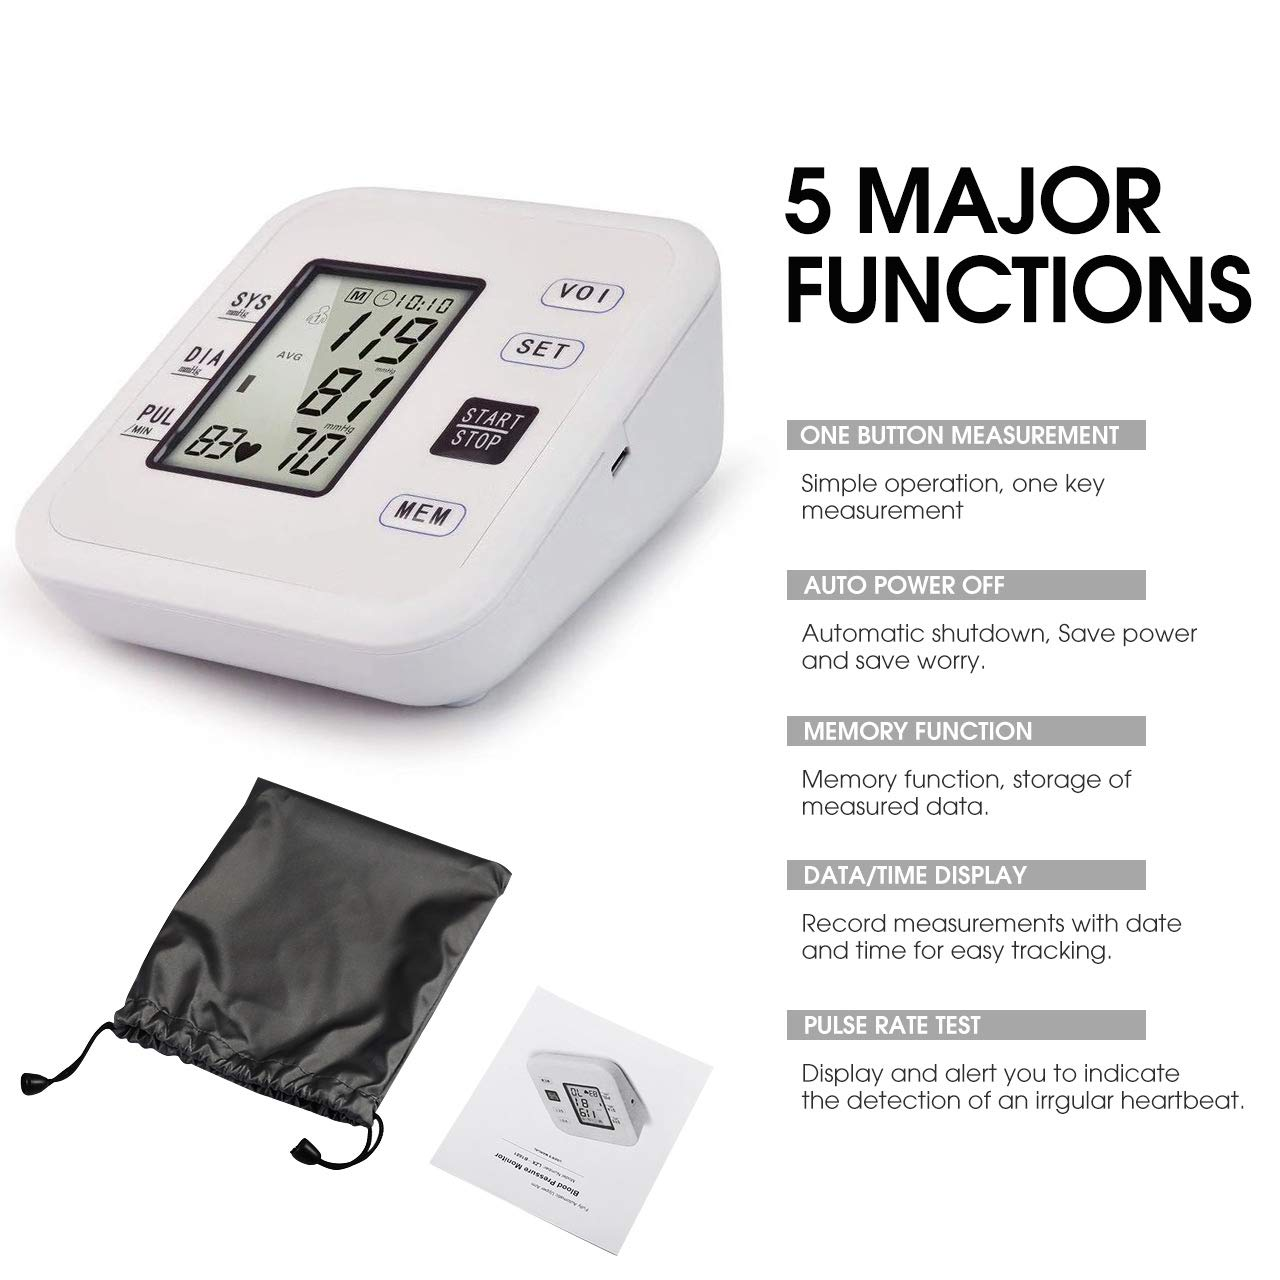 ... Blood Pressure Monitor with Crystal Digital Display 99 Set Memory Voice Broadcast Adjustable Cuff Accurate Blood Pressure Monitor for Home Use: Health ...